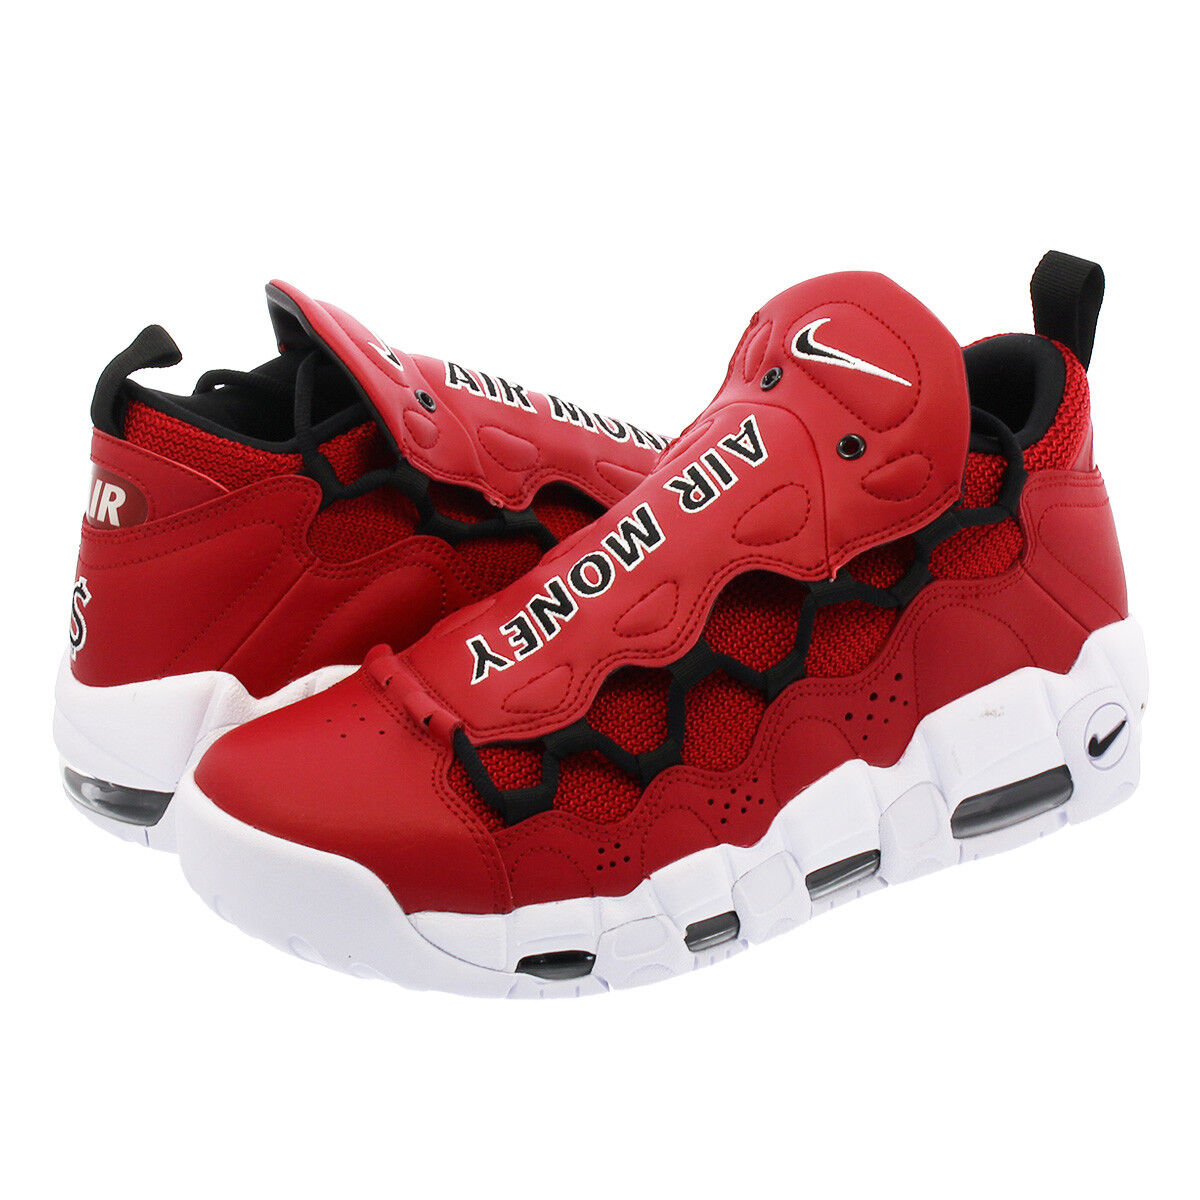 Nike Air More Money AJ2998 600 Gym Red White Men Price reduction